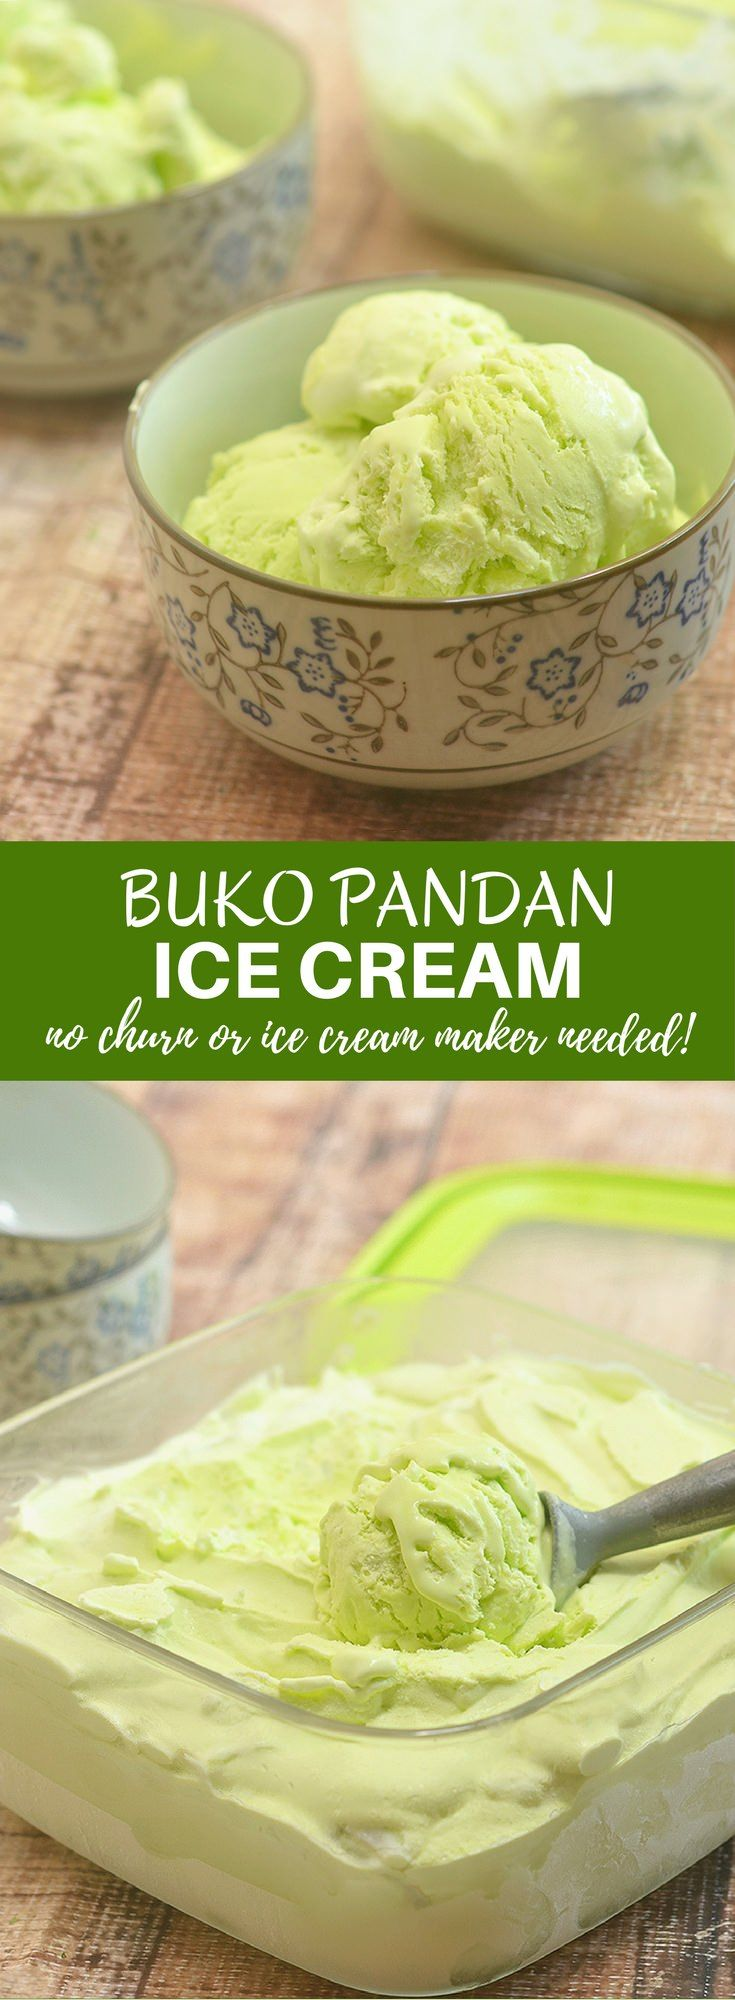 Buko Pandan Ice Cream with tender young coconut strips and intense pandan flavor is so easy to make at home and there's no need for an ice cream maker! Rich and creamy, it's a frozen treat you'd want year round! via @lalainespins